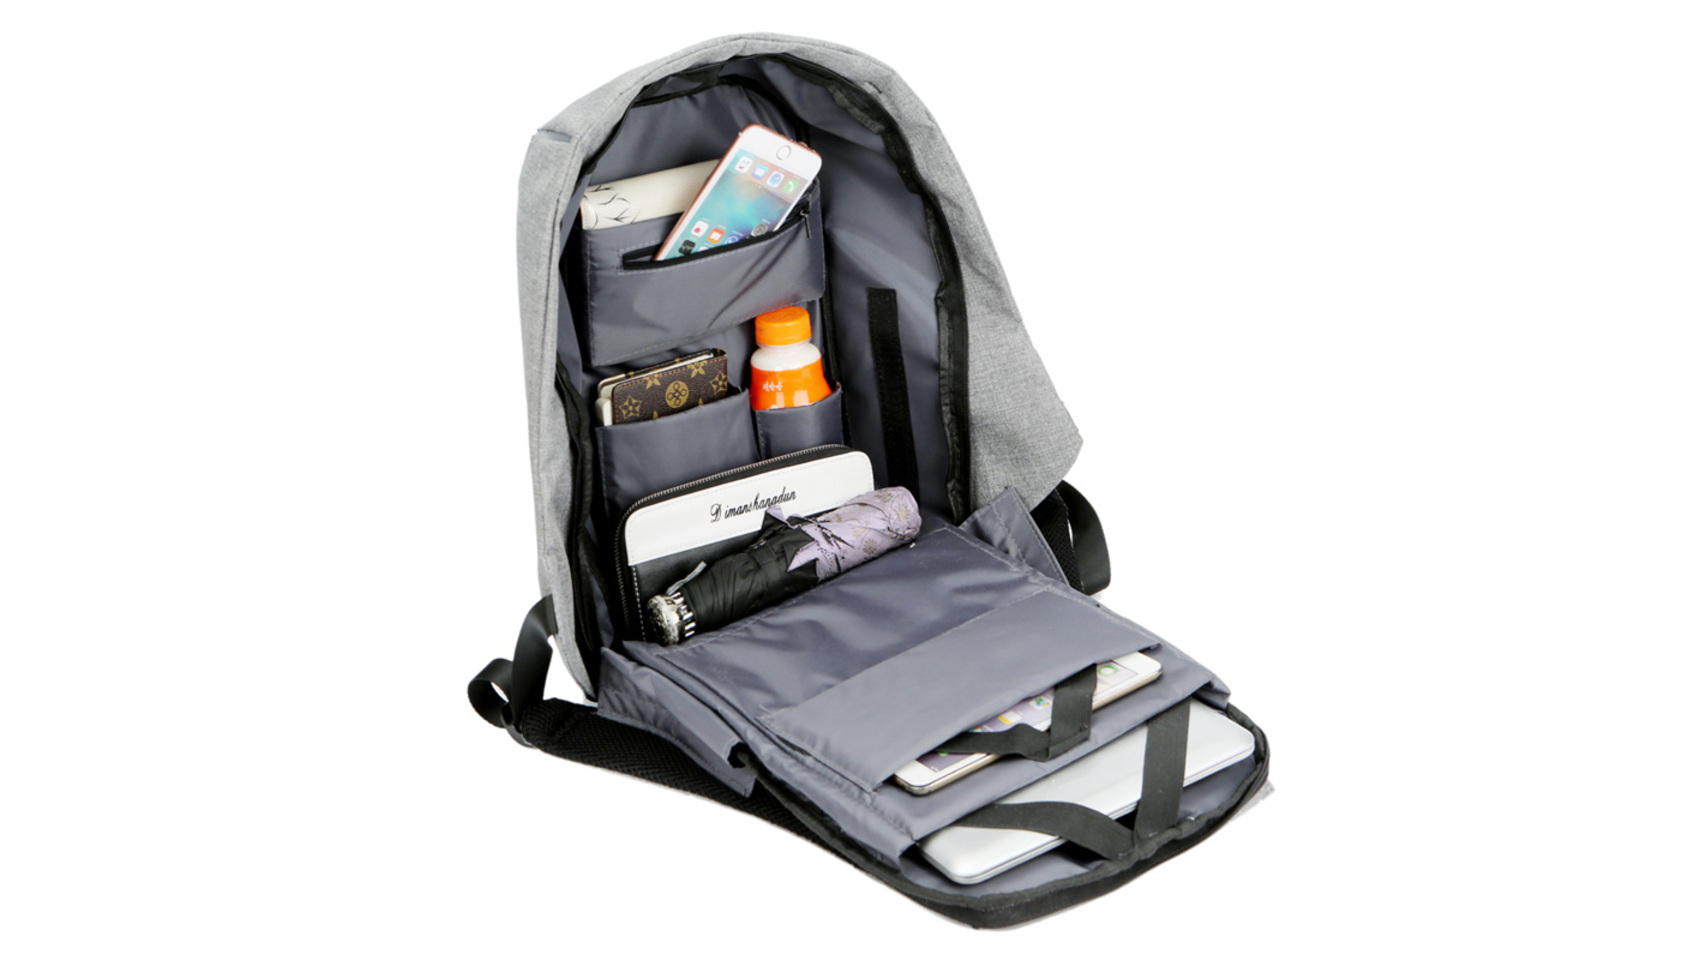 Bobby-backpack-Waterproof-XD-DESIGN-Security-Multi-Function-Backpack-School-Reversible-with-USB-Charging-Port-Laptop